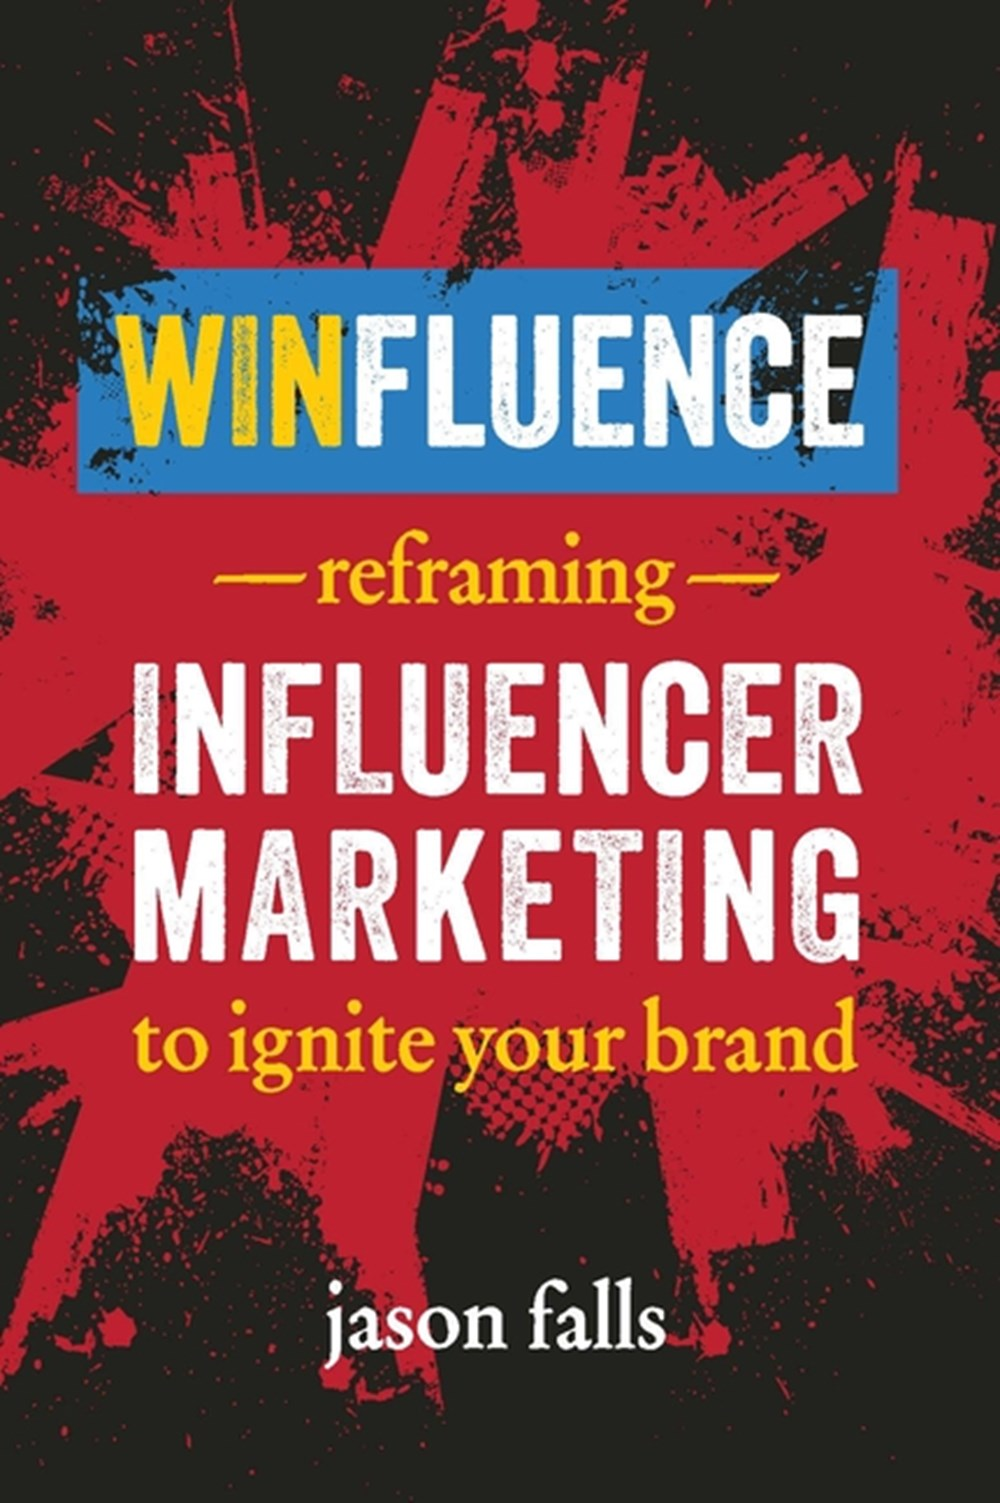 Winfluence Reframing Influencer Marketing to Reignite Your Brand